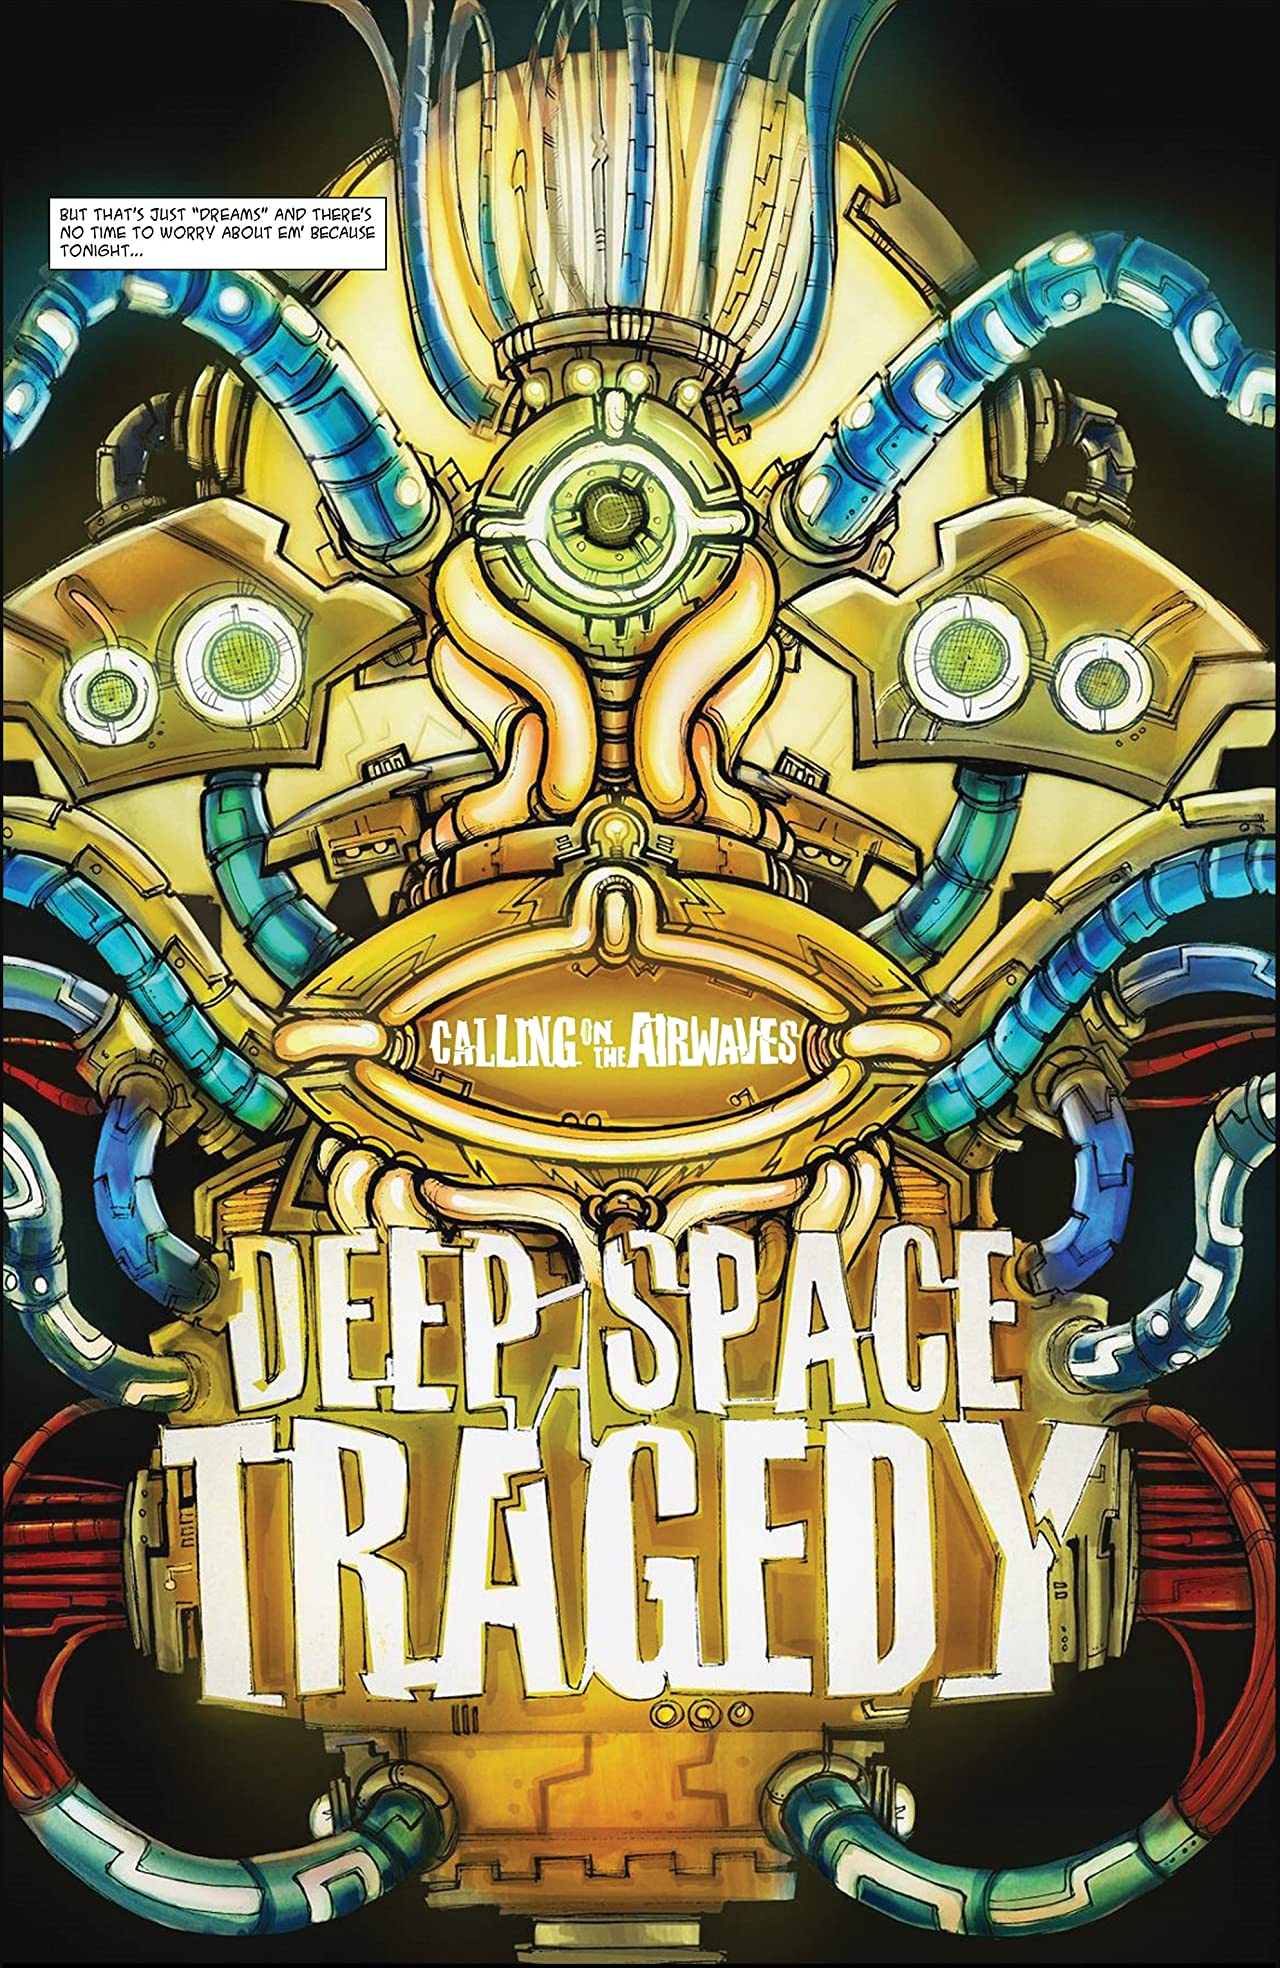 Deep Space Tragedy #1